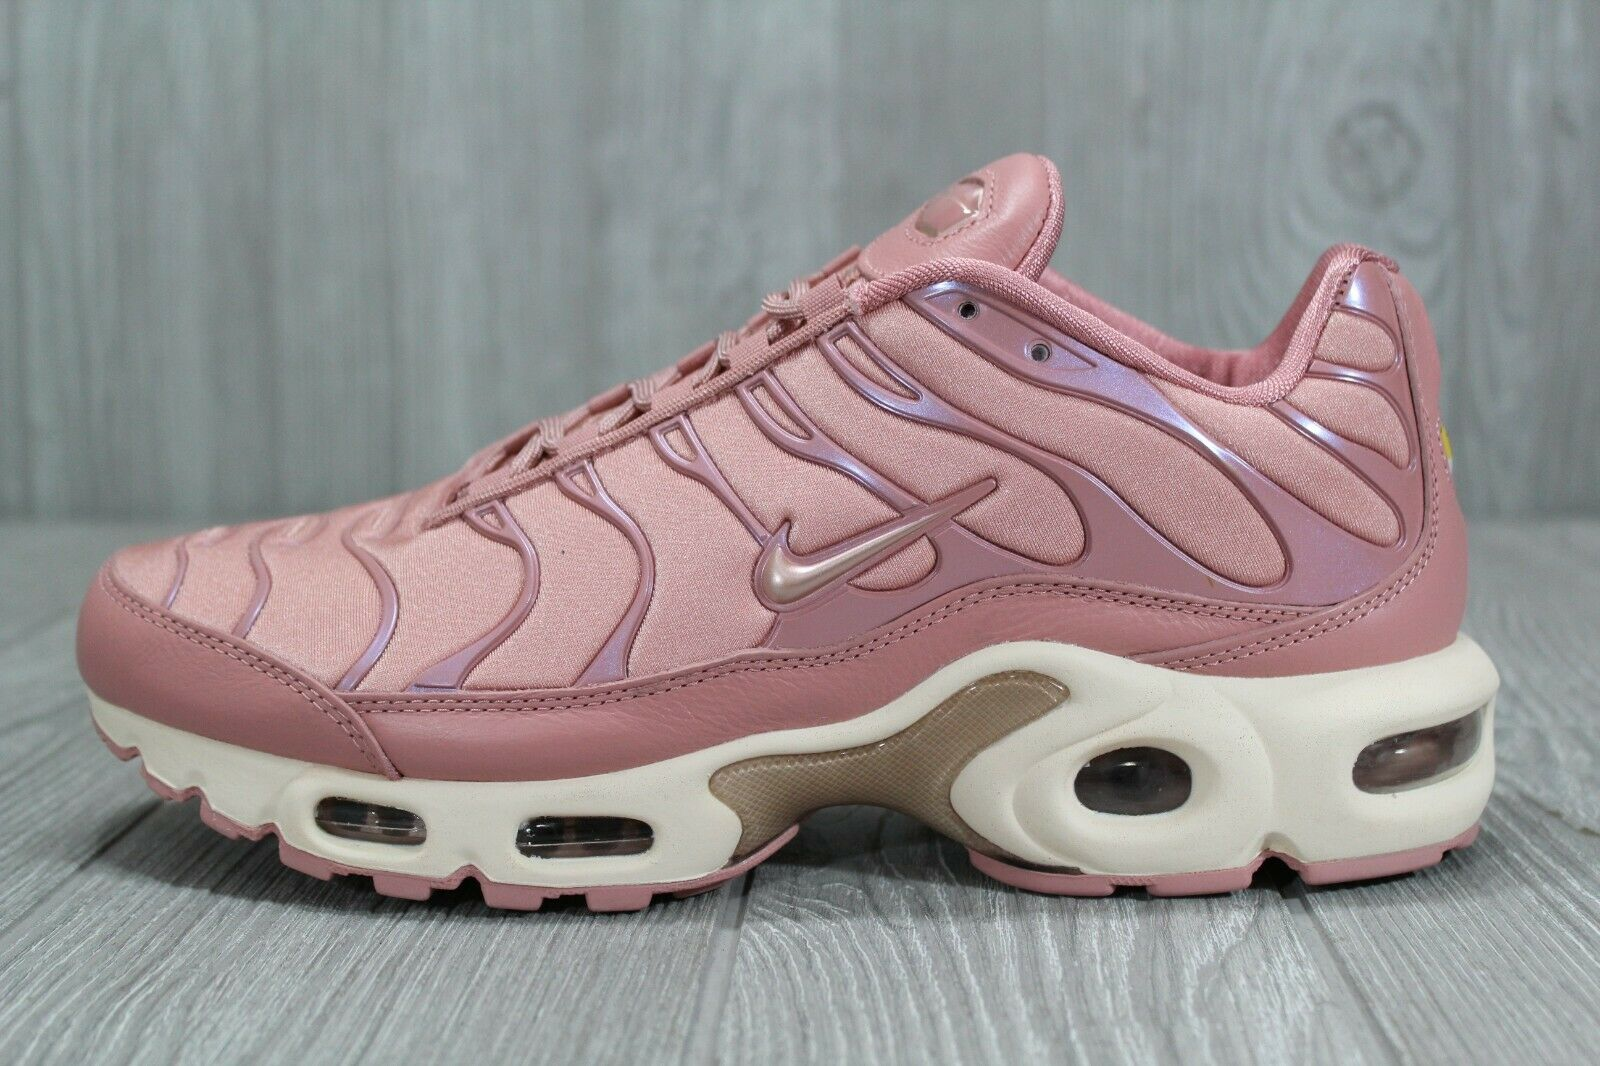 39 Nike Air Max Plus TN Rust Pink Women's Running shoes Size 6.5, 9 AT5695 600